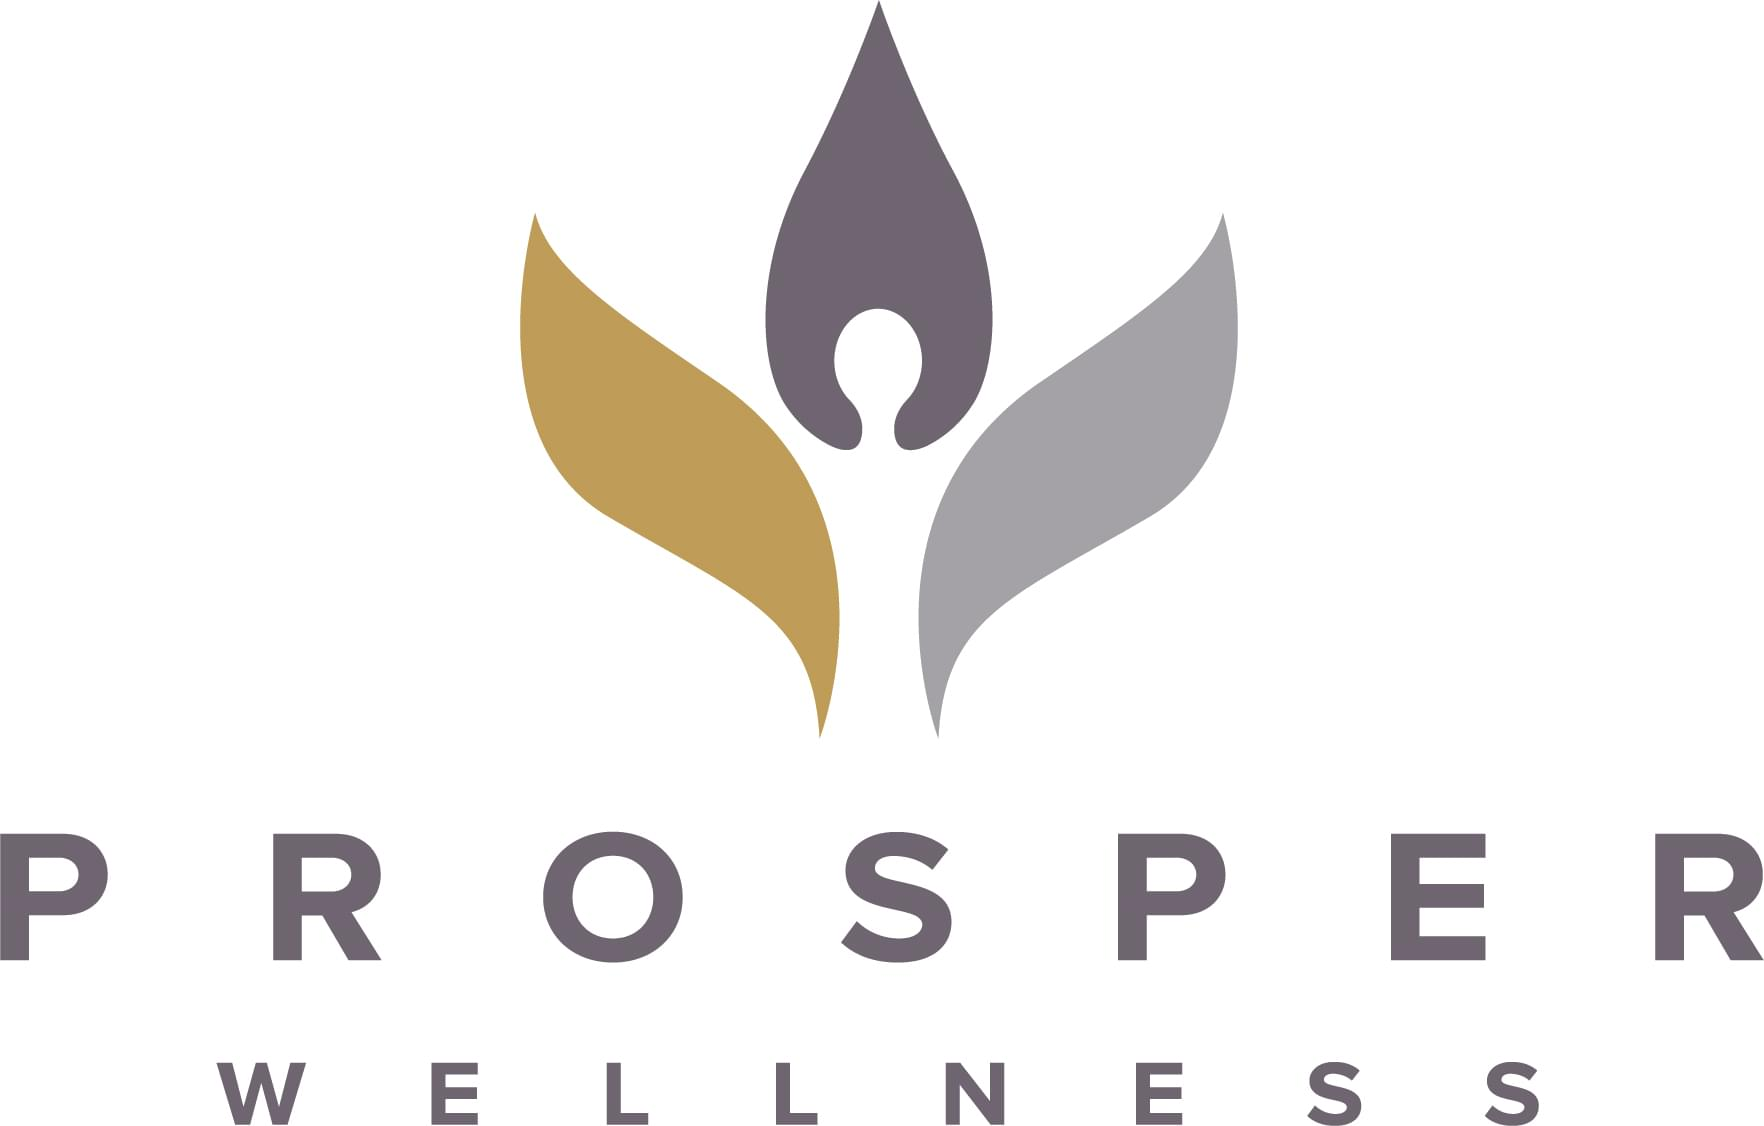 Prosper Wellnesss Coupons and Promo Code